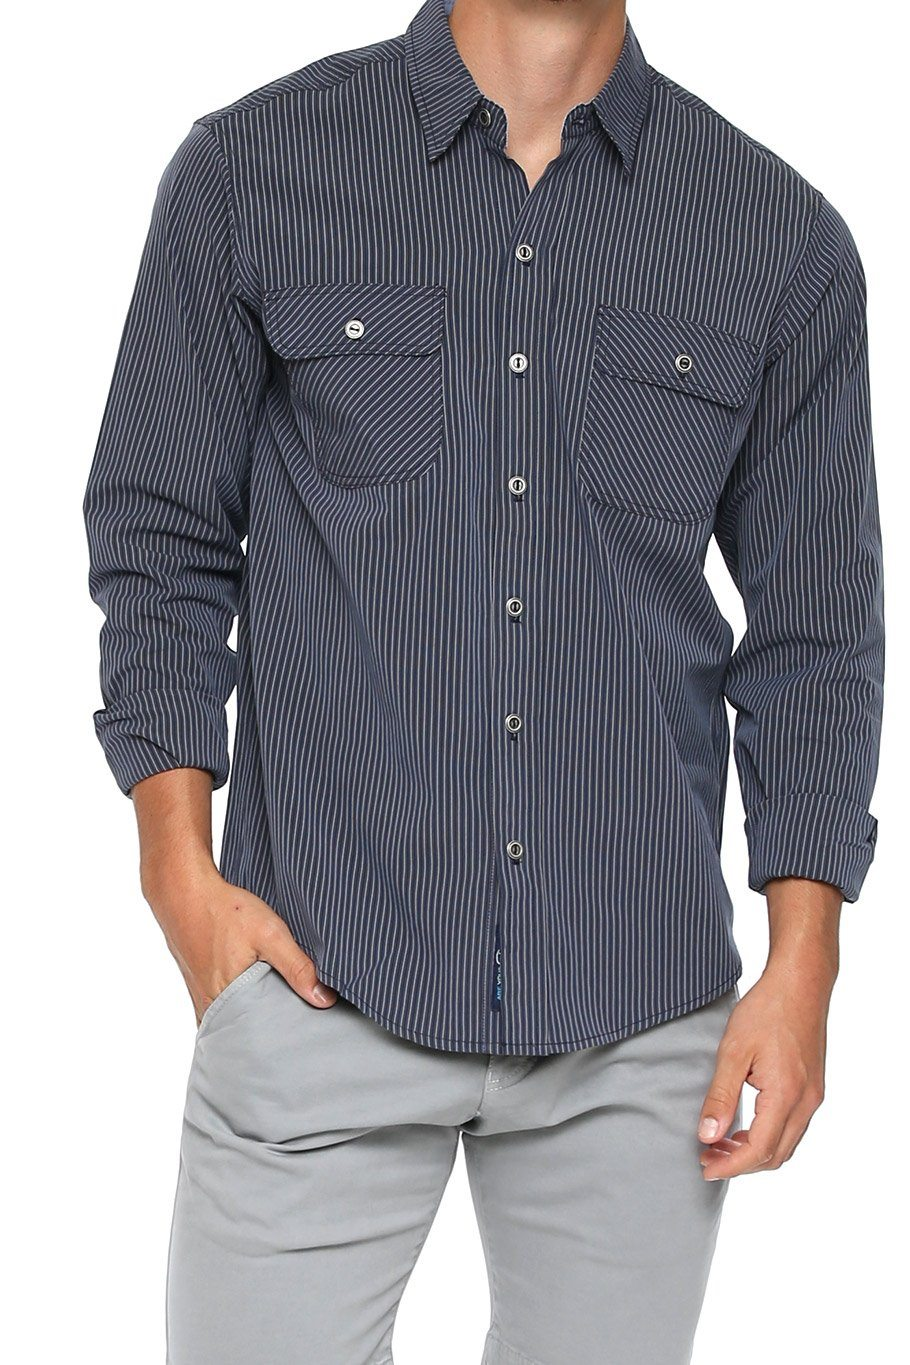 Men's Button Up Shirt - Grey Stripe - Shore